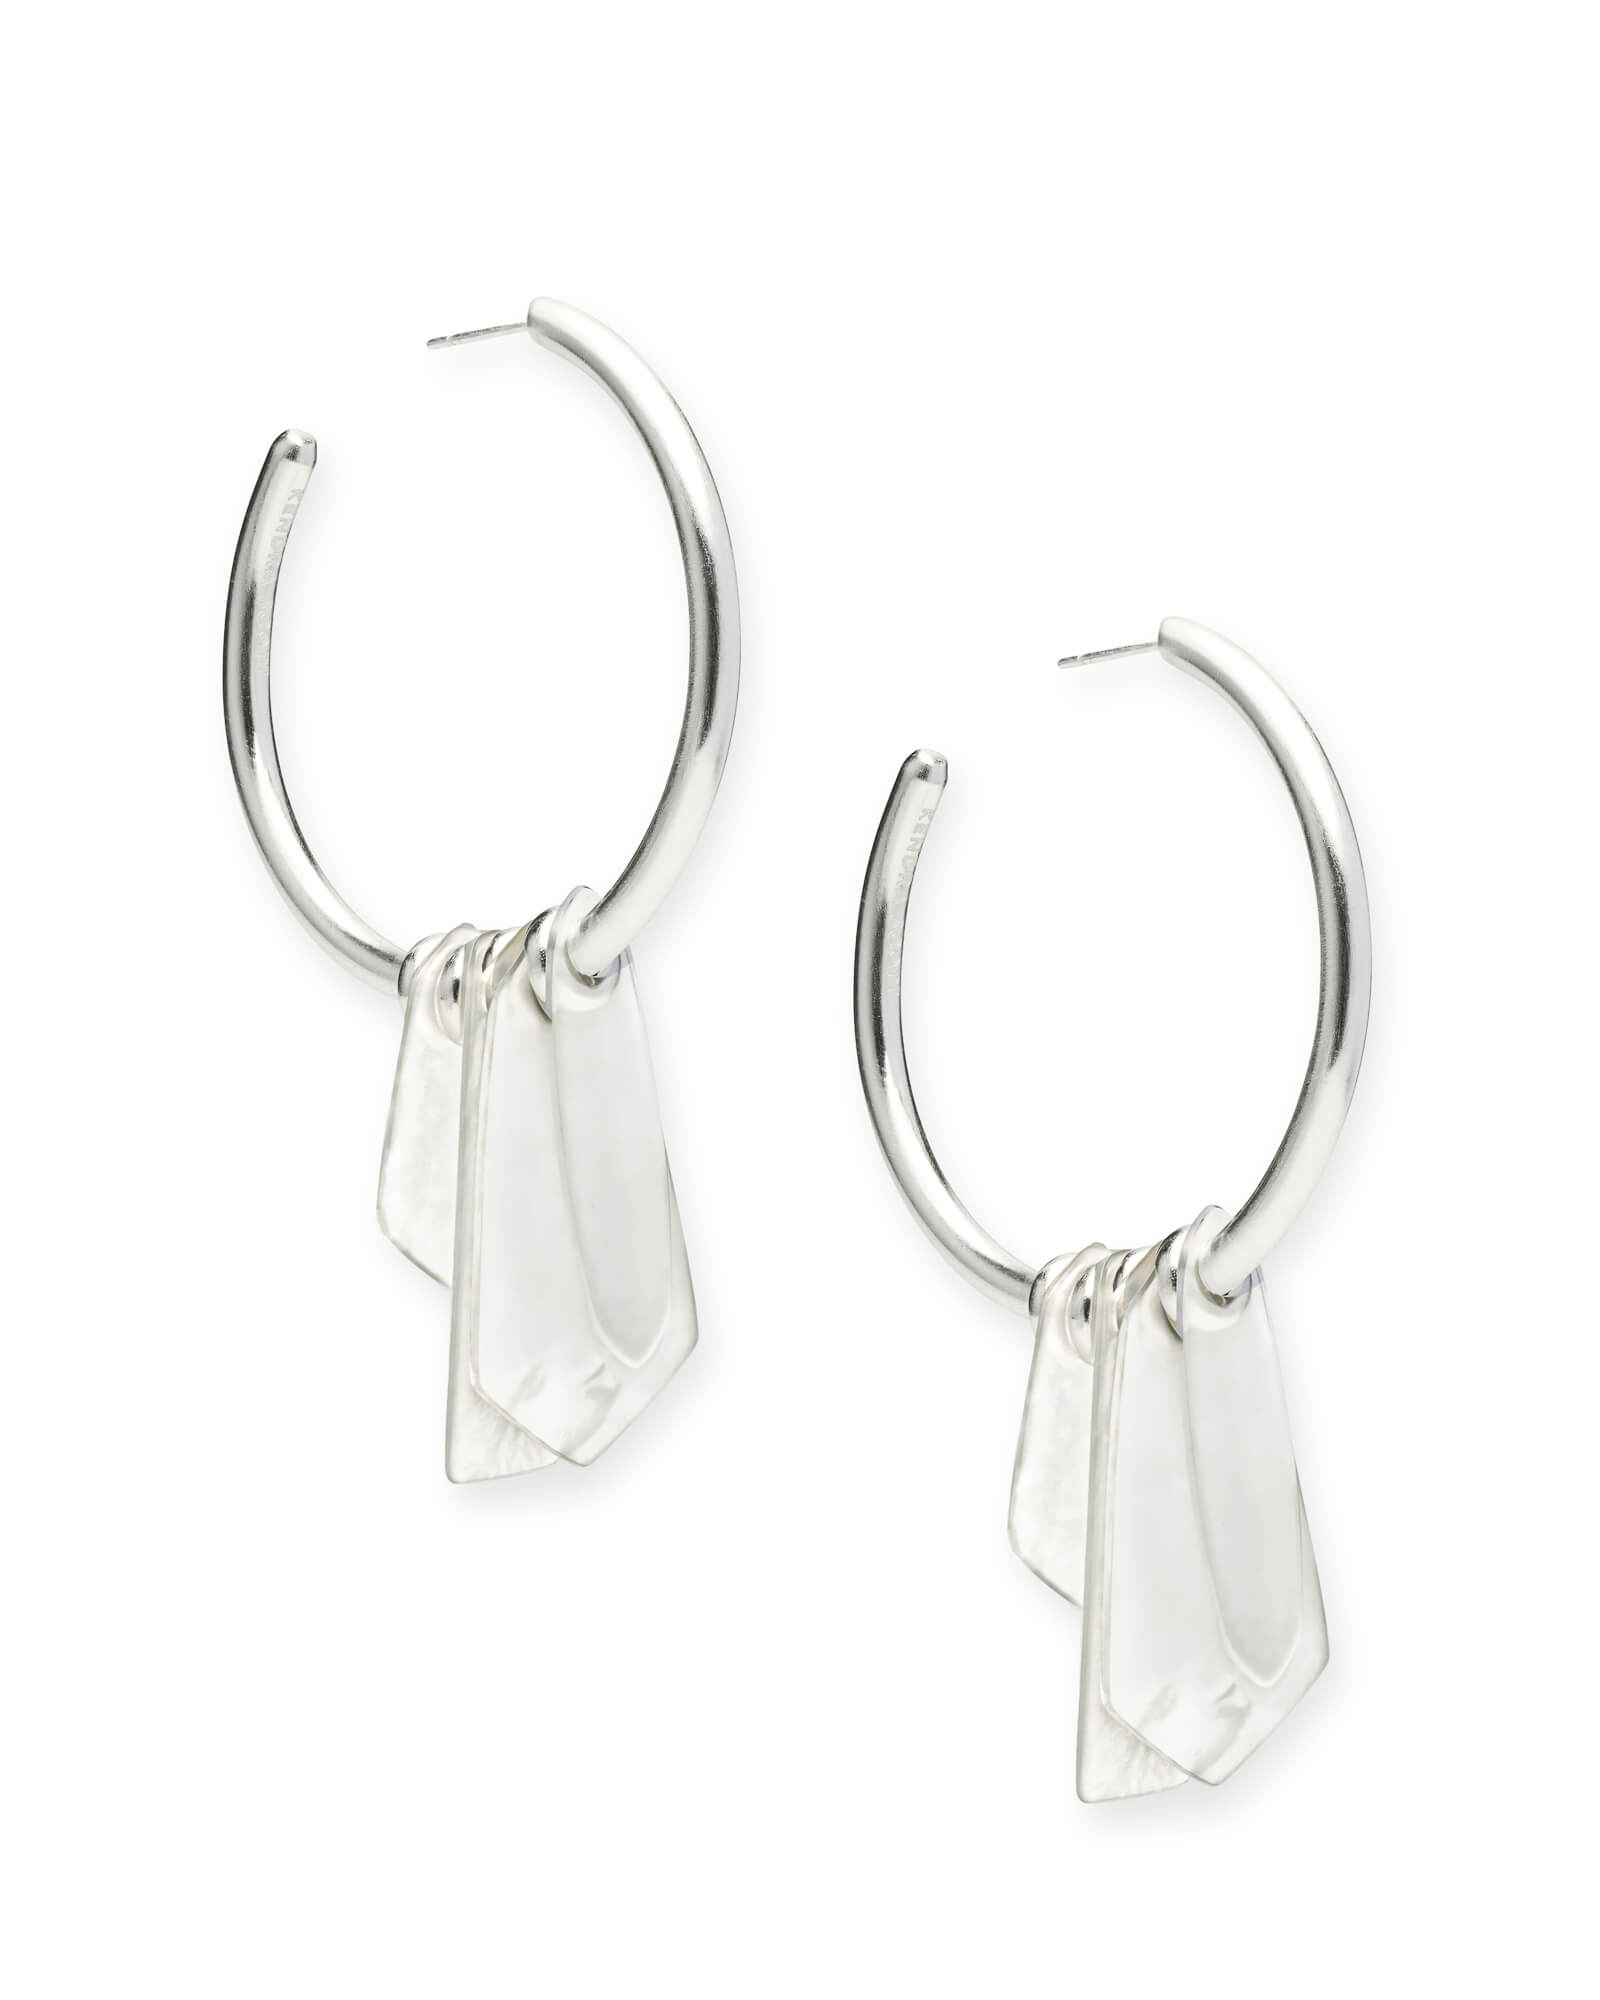 Gaby Bright Silver Statement Earrings in Ivory Mix